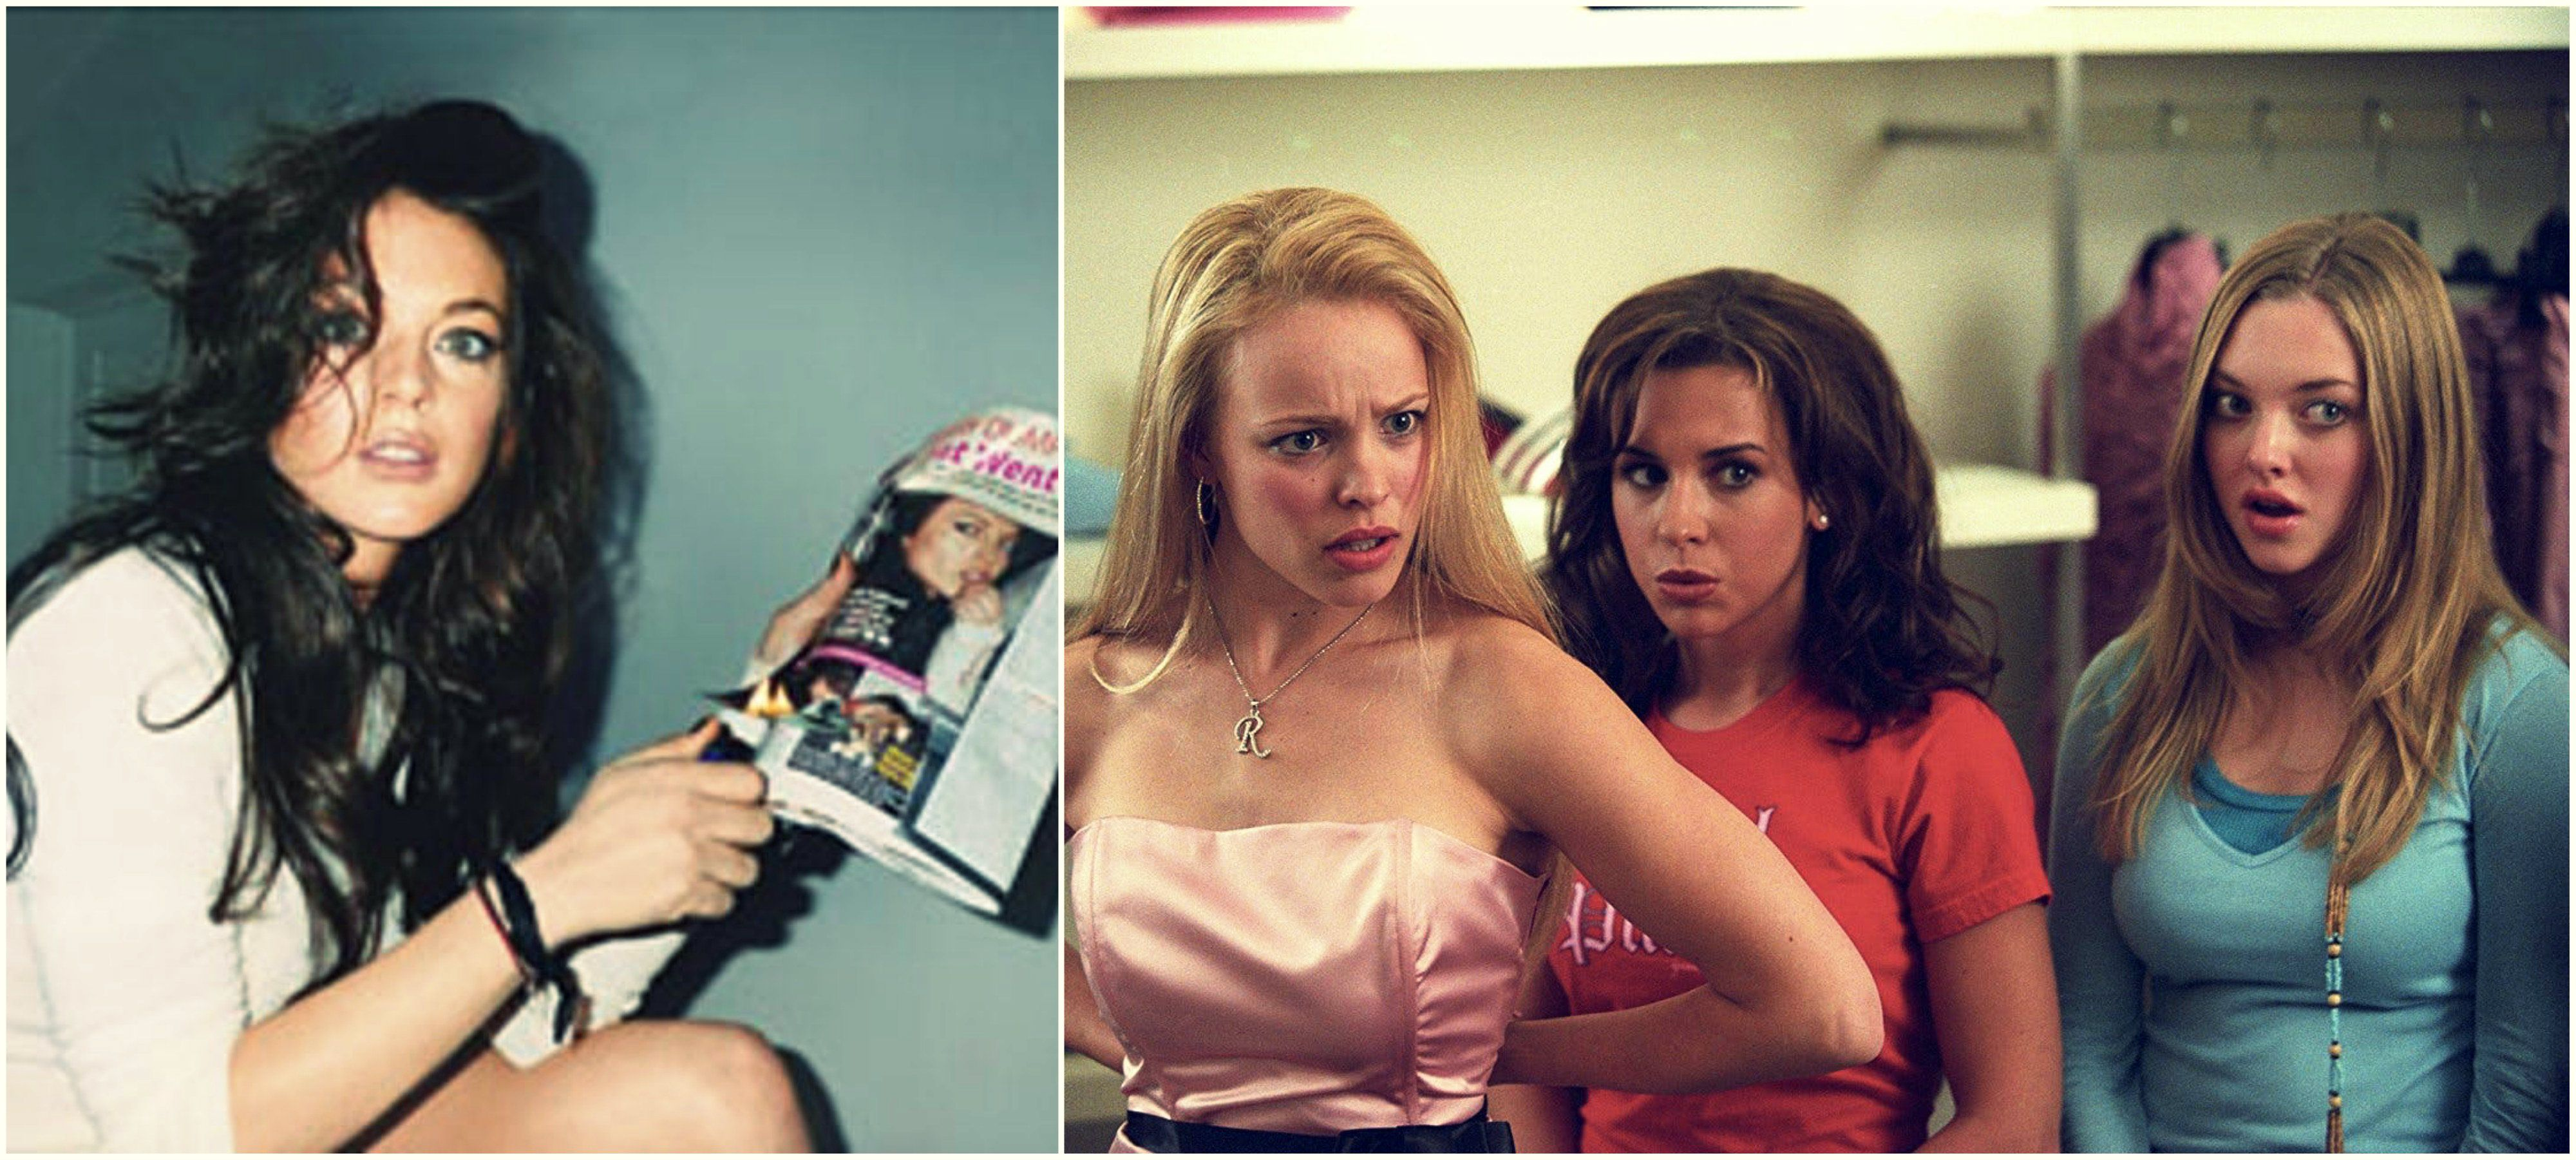 15 'Mean Girls' Cast Secrets You Never Knew About | TheTalko